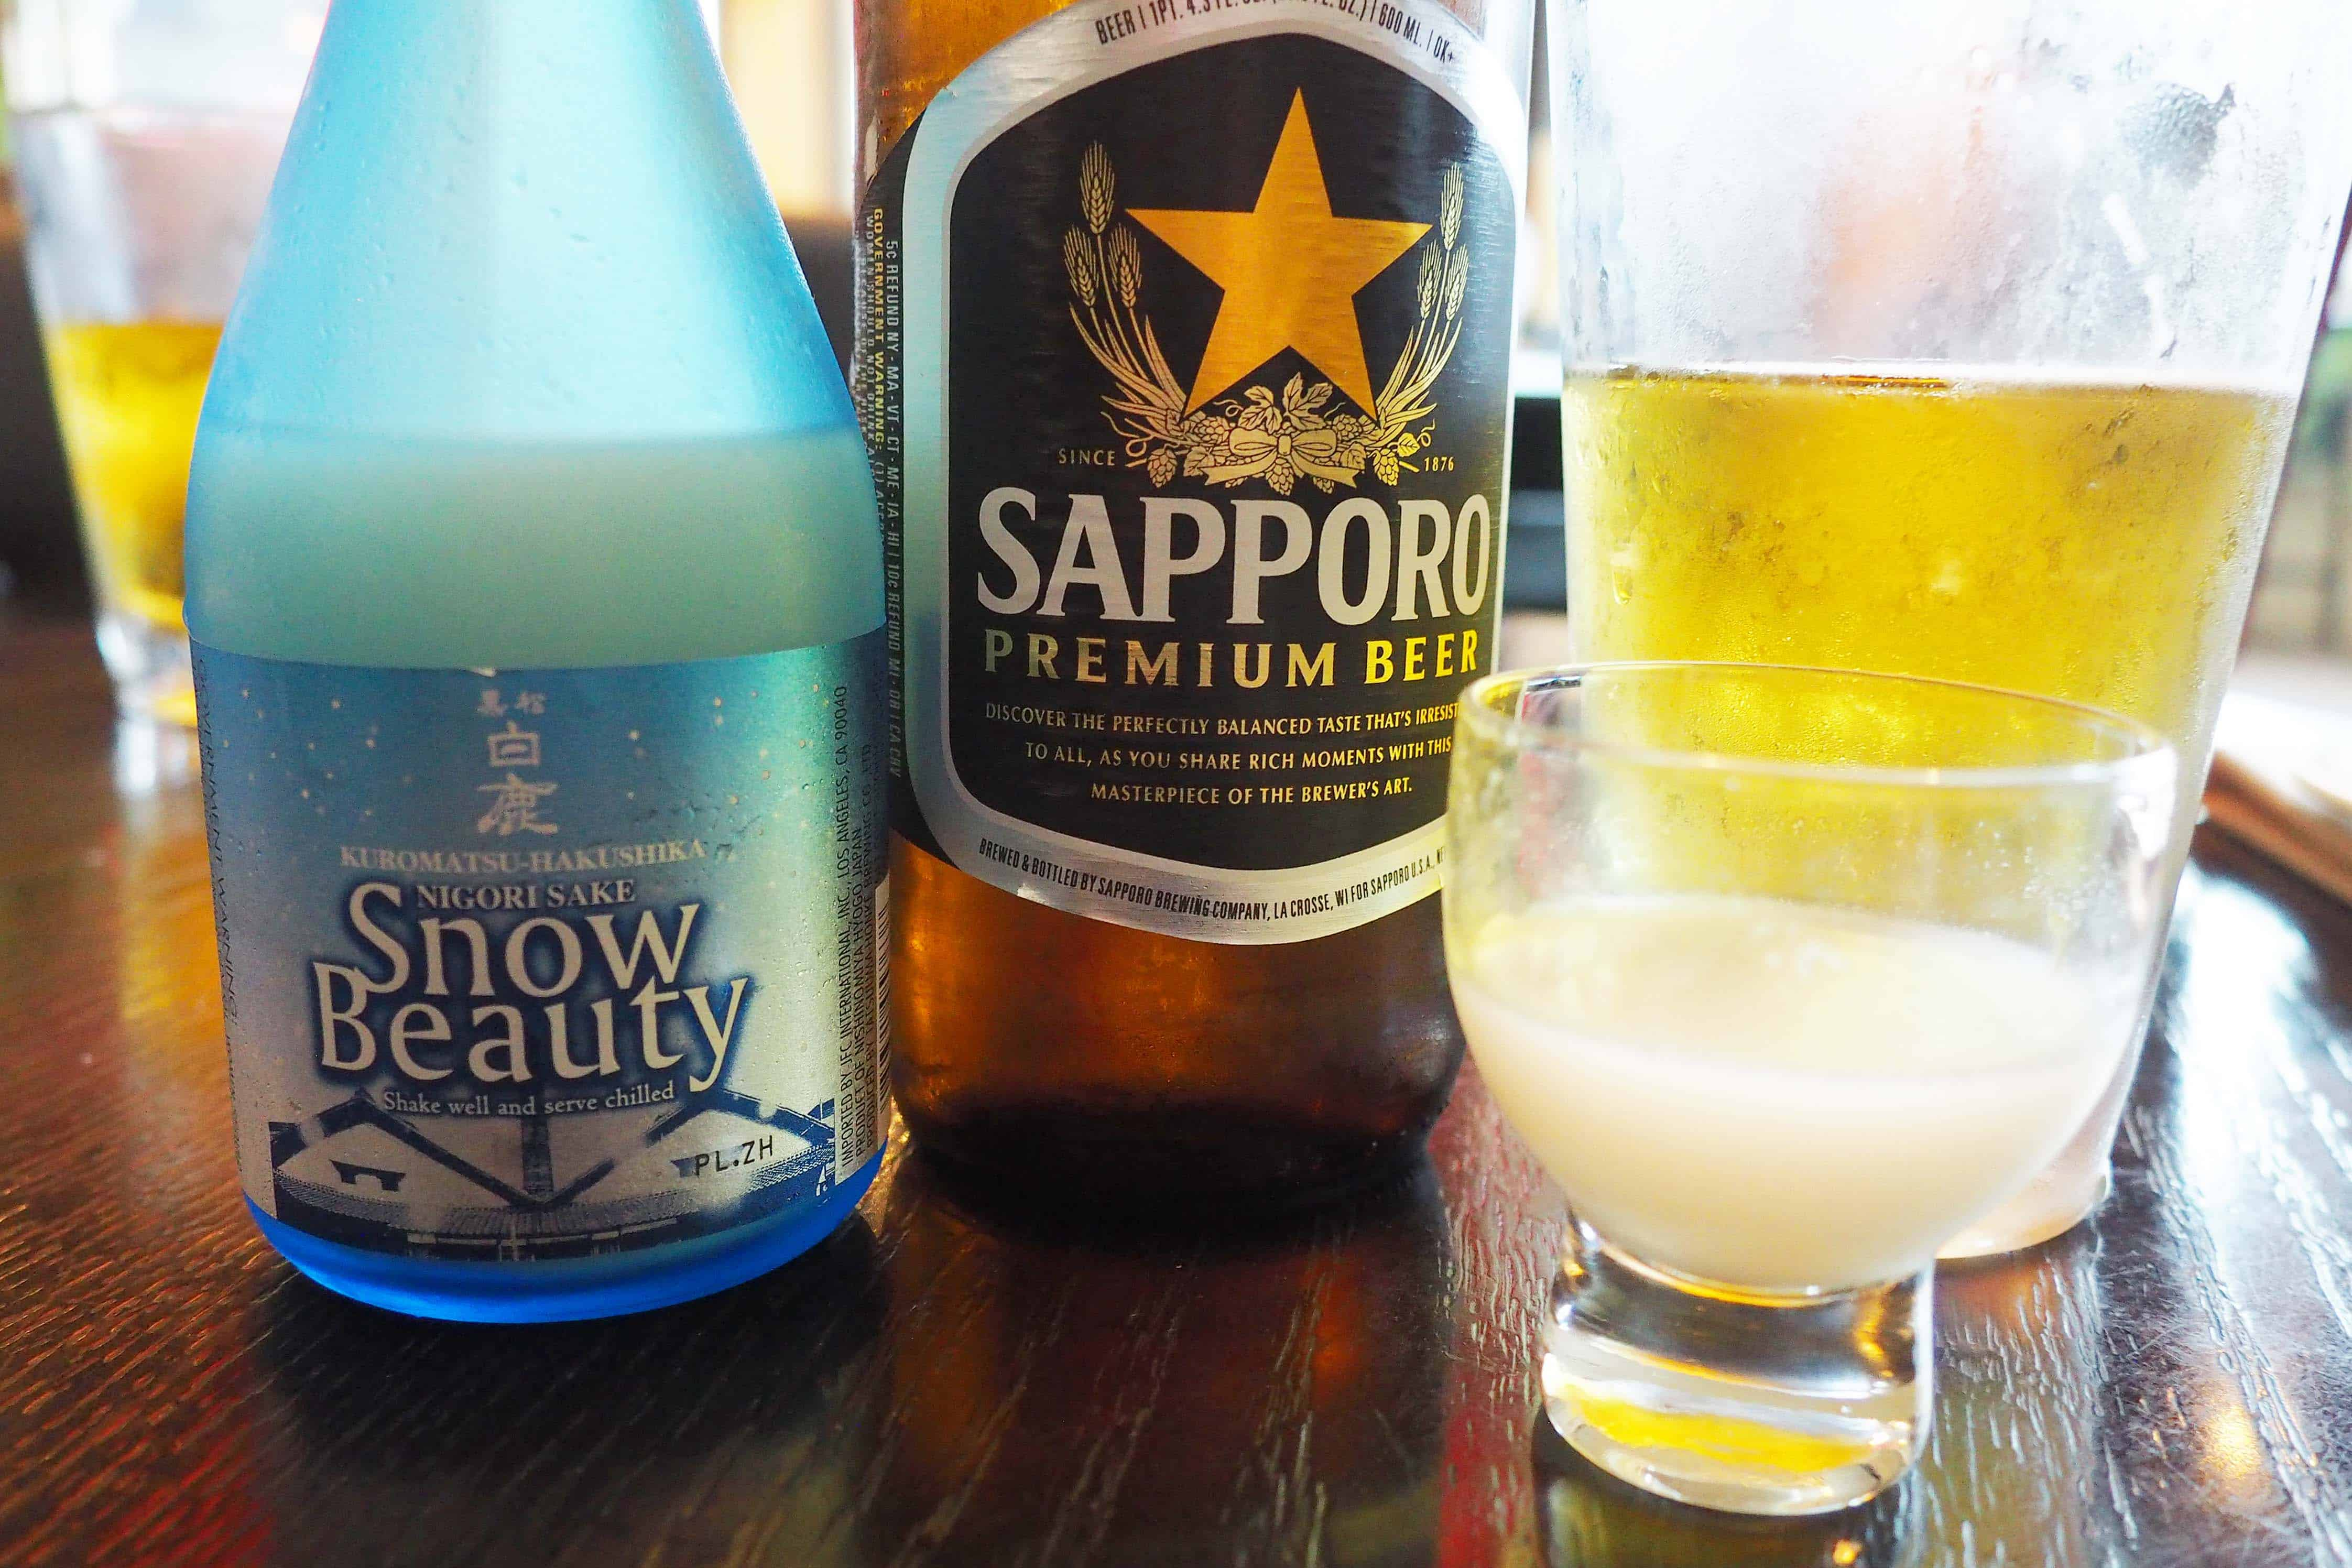 Sapporo and Snow Beauty Sake at Harney Sushi